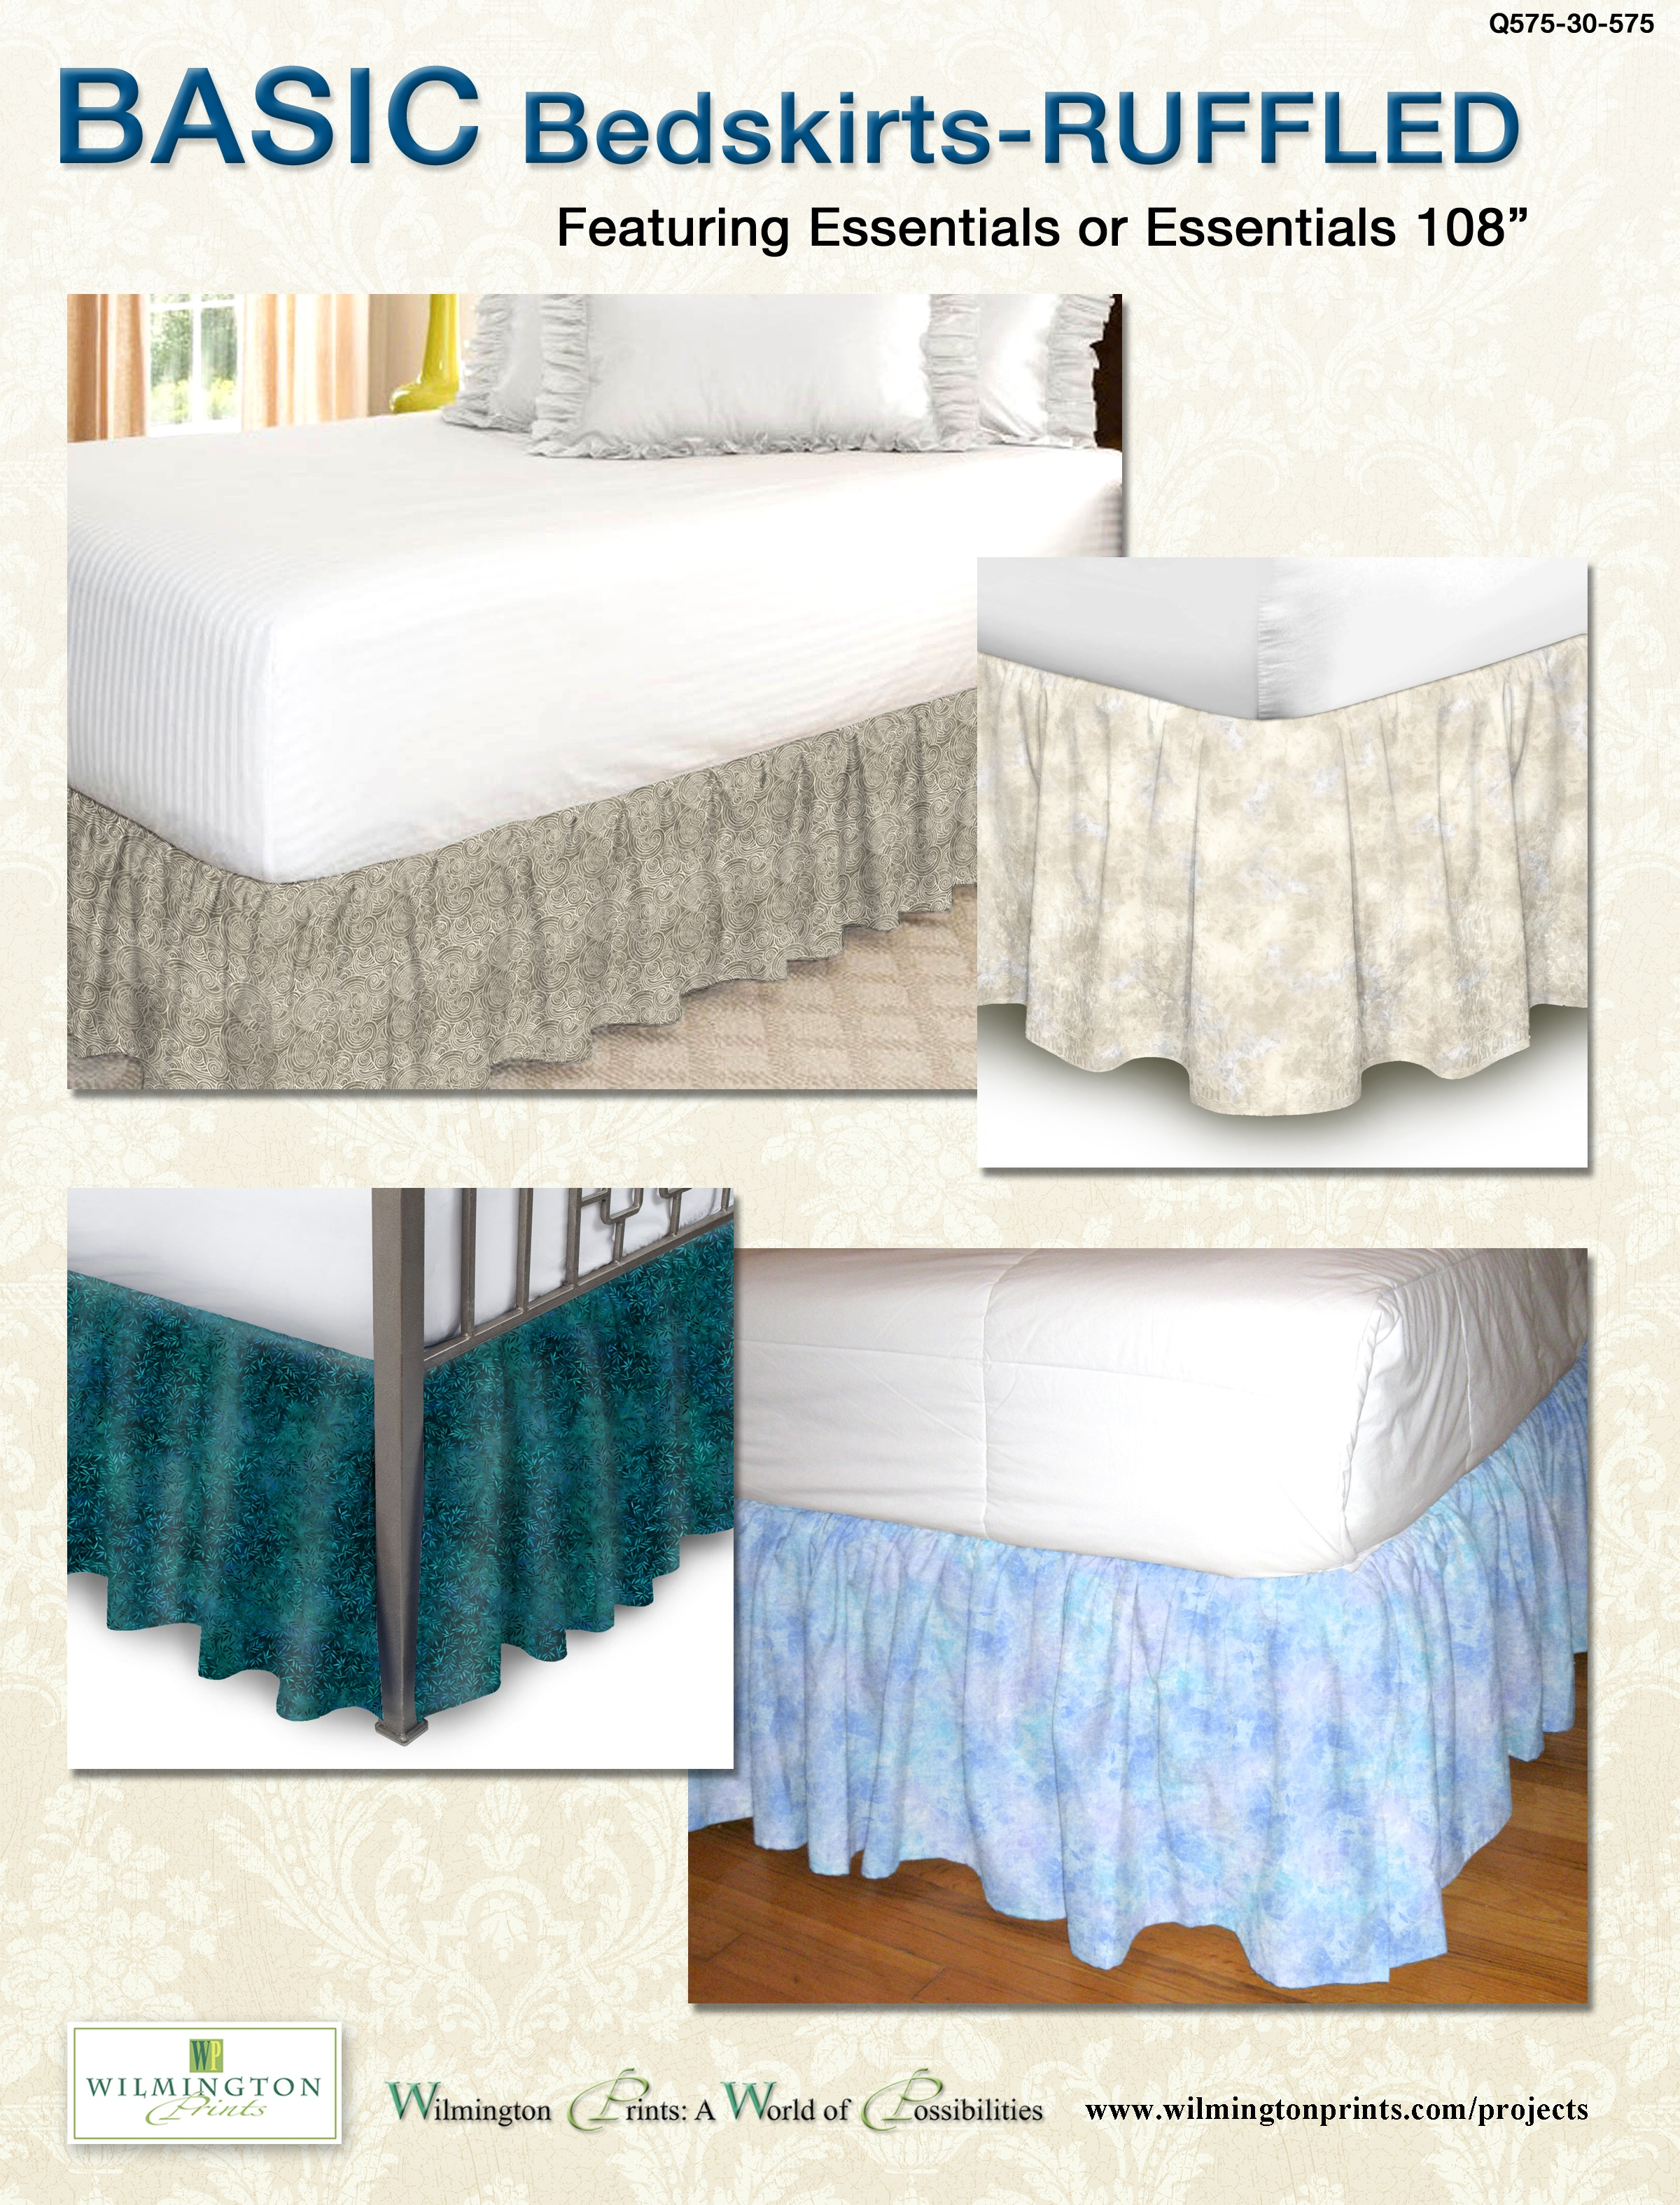 Basic Bedskirt - Ruffled